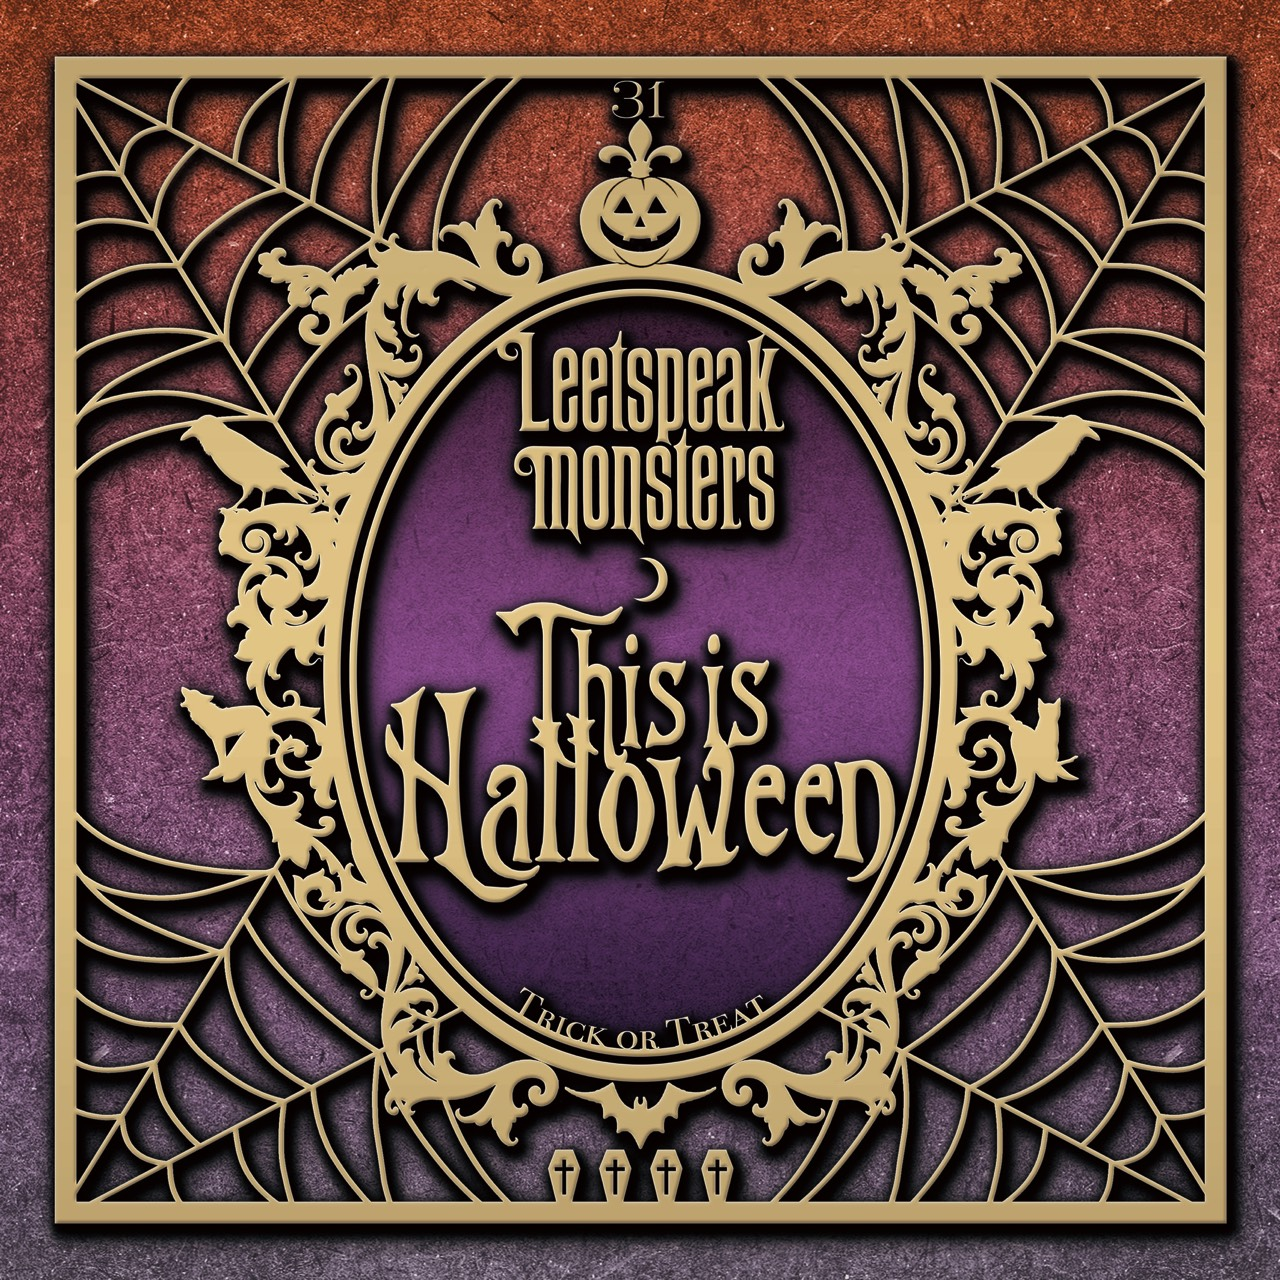 Leetspeak monstersのThis is Halloweenジャケット